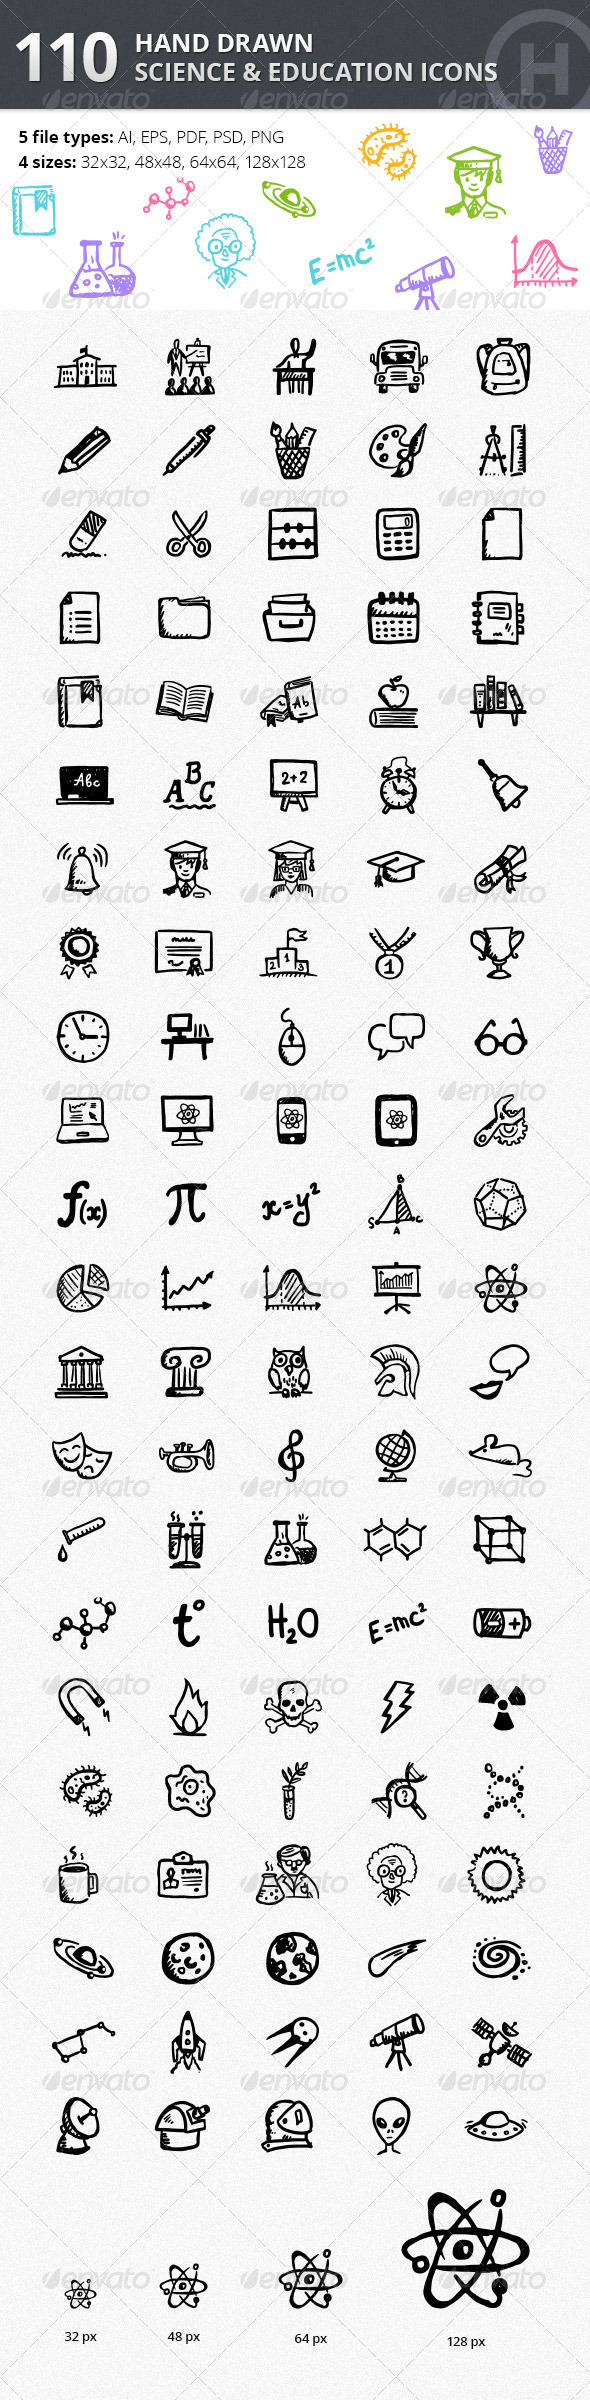 GraphicRiver 110 Hand-drawn Science & Education Icons 5089439